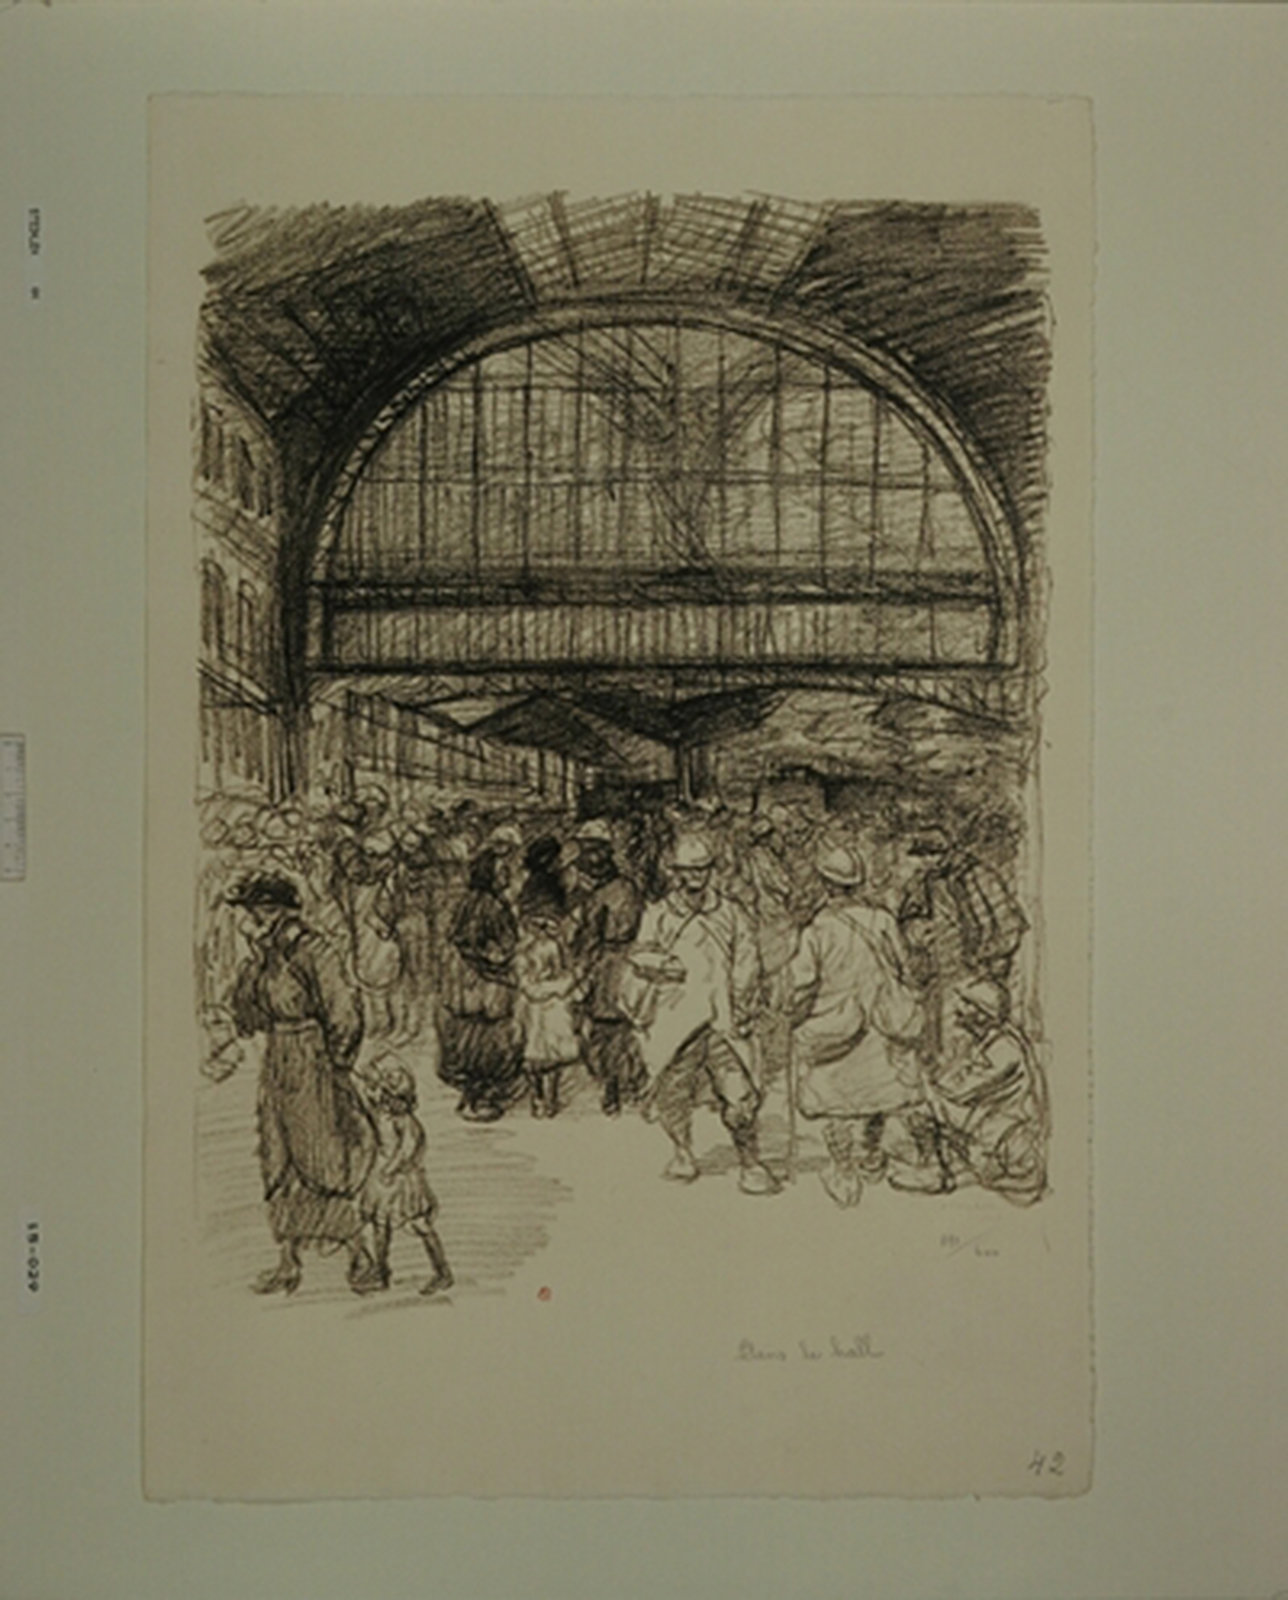 Hall of a station during wartime, Steinlen, Théophile Alexandre, Koninklijke Bibliotheek van België - Royal Library of Belgium (KBR), In Copyright